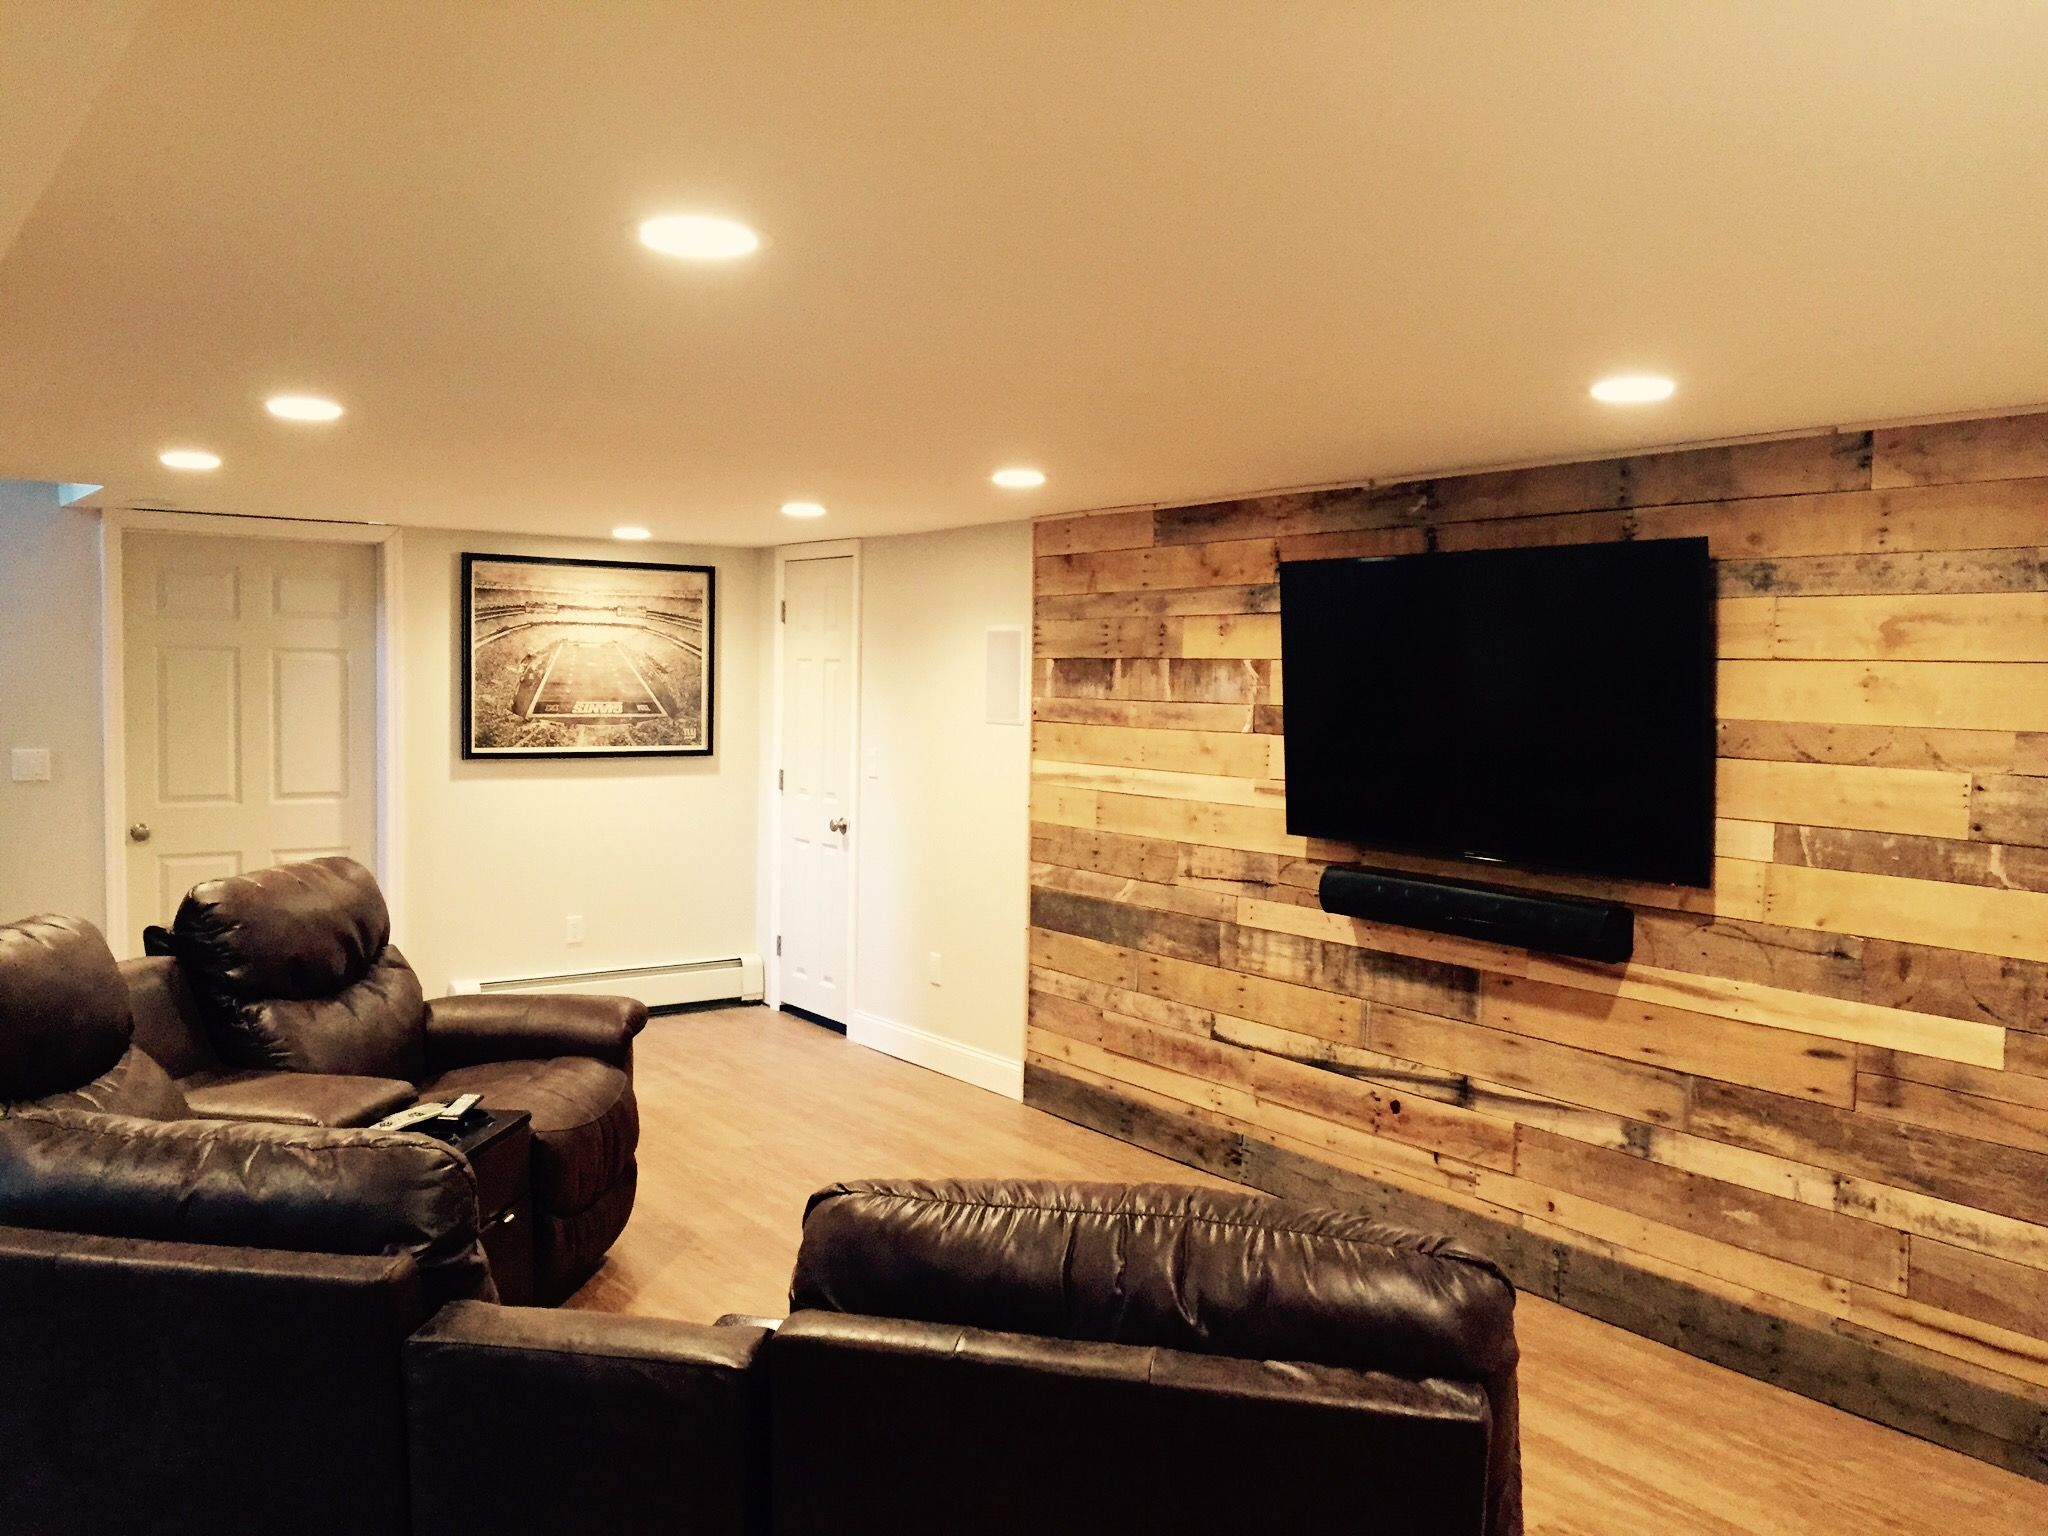 Pallet Wall In Our Finished Basement Dave Cave Cost 0 Man Cave Tv Wall Man Cave Home Bar Basement Remodel Cost